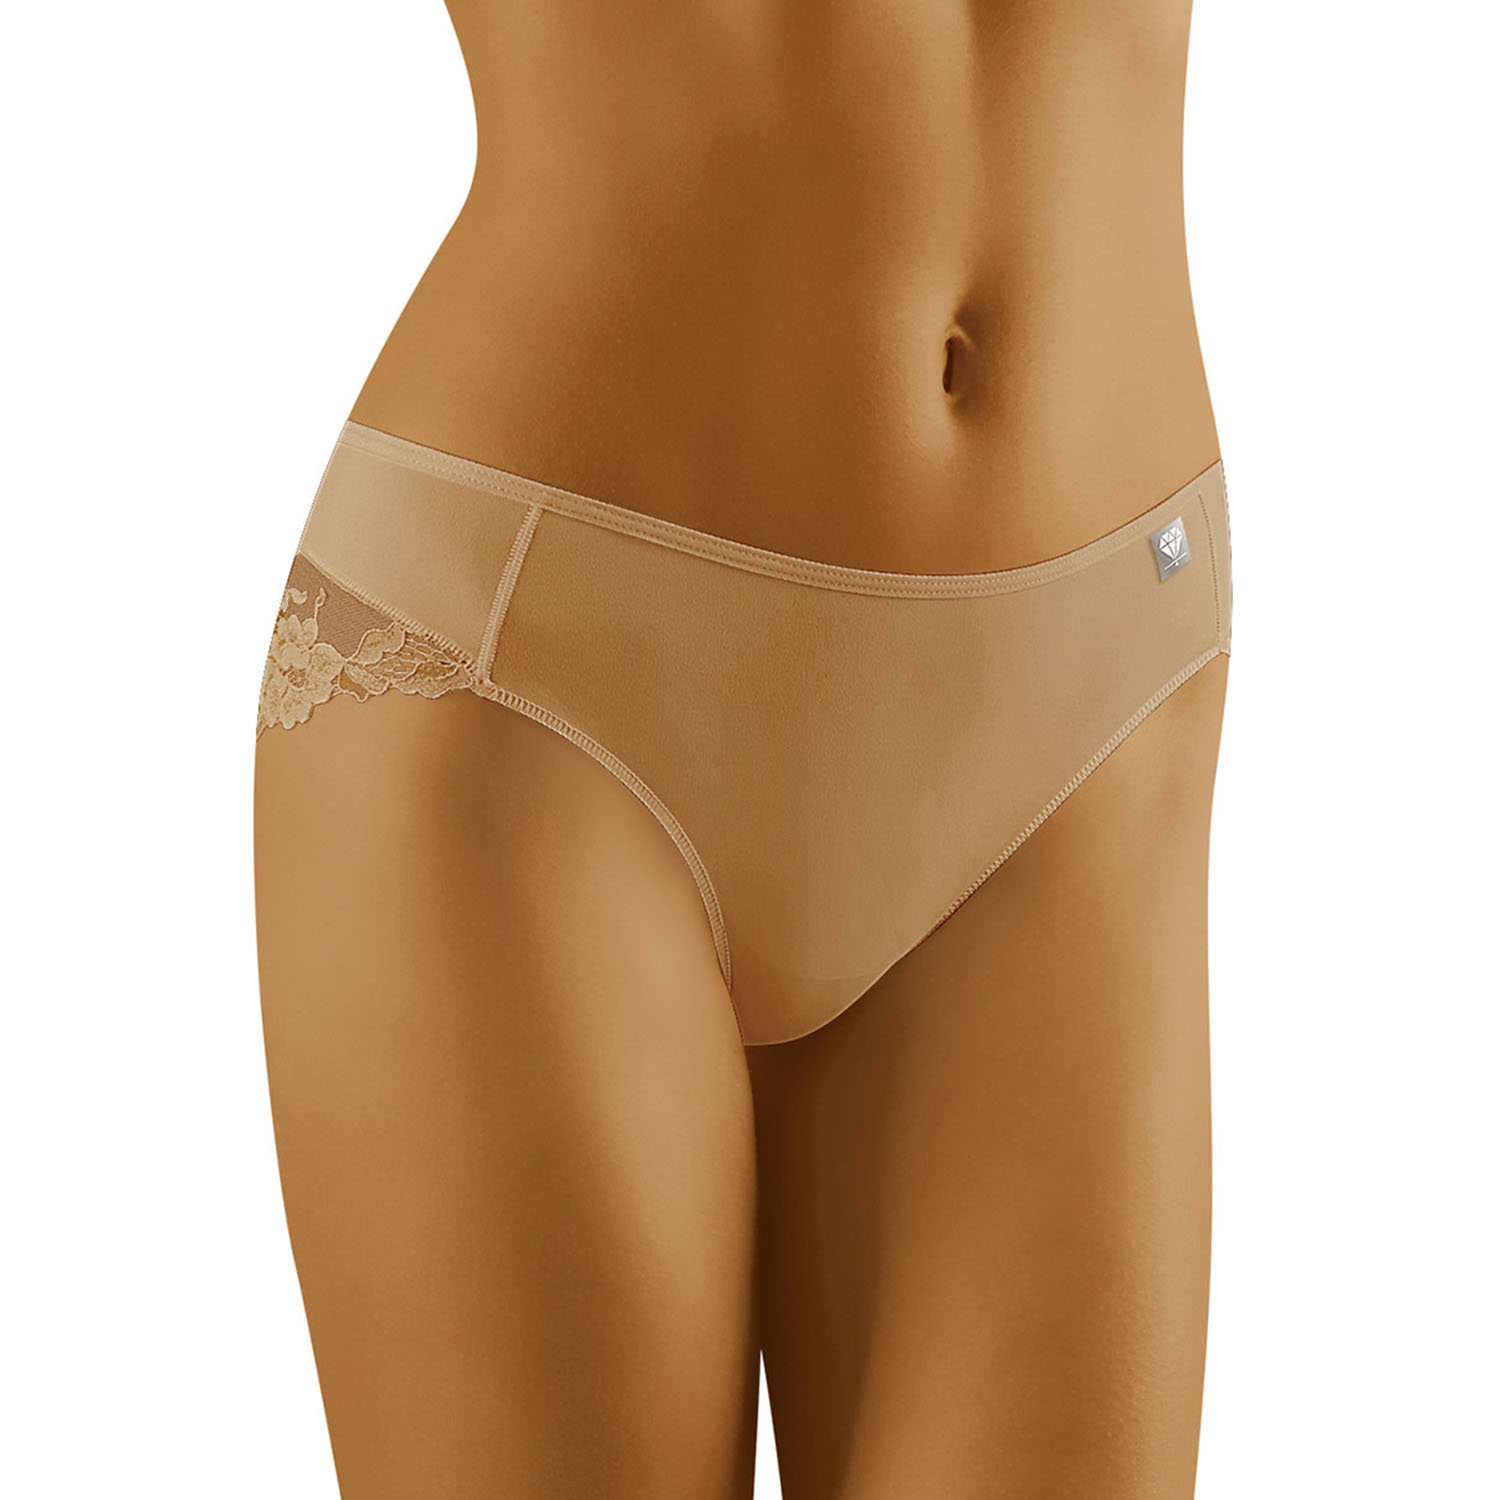 Wolbar women/'s briefs WB315 New Panties Comfortable Underwear,Top Quality